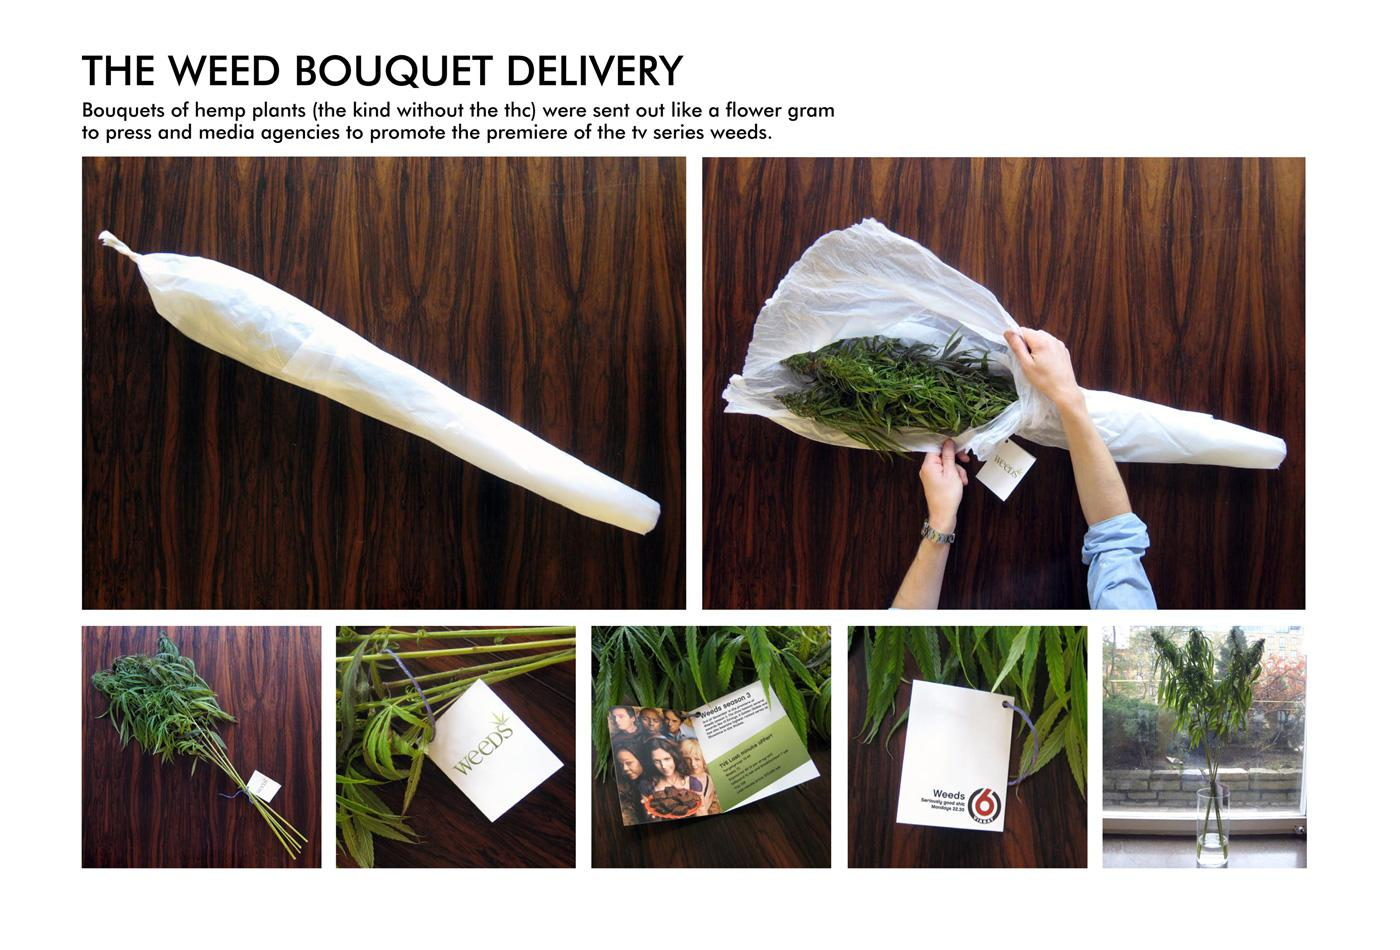 TV6 Direct Ad -  The Weeds Bouquet Delivery